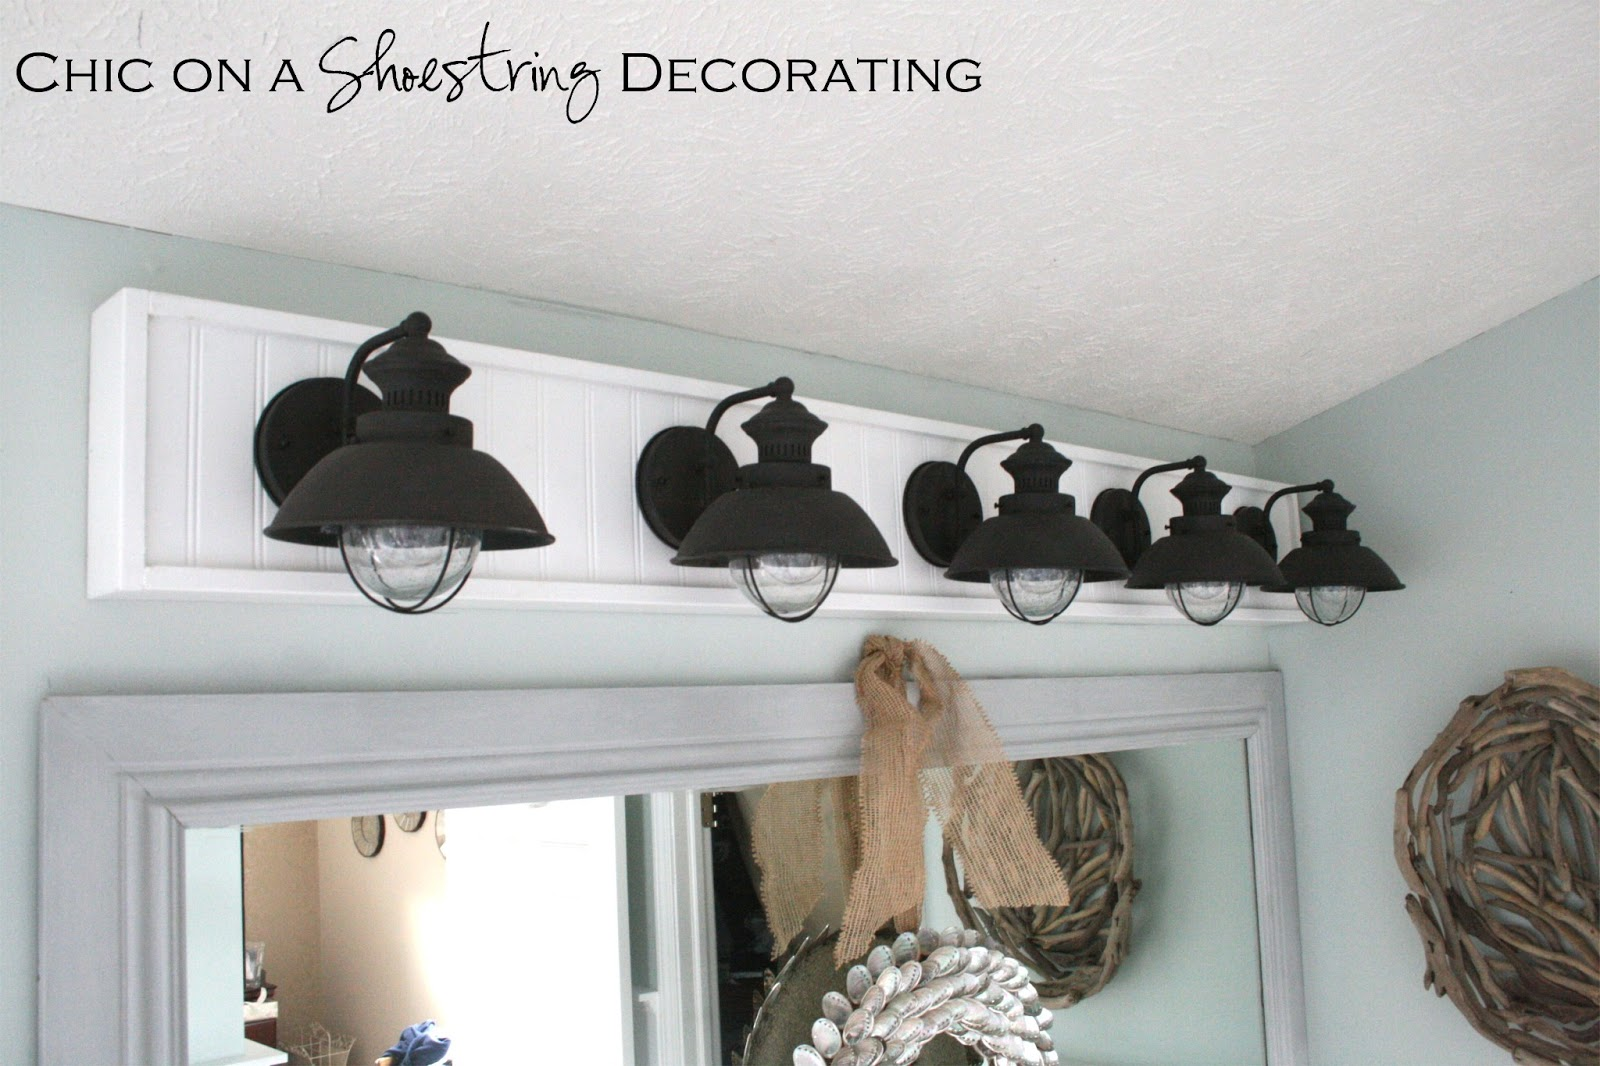 Bathroom Light Fixtures For Cheap chic on a shoestring decorating: how to build a bathroom light fixture